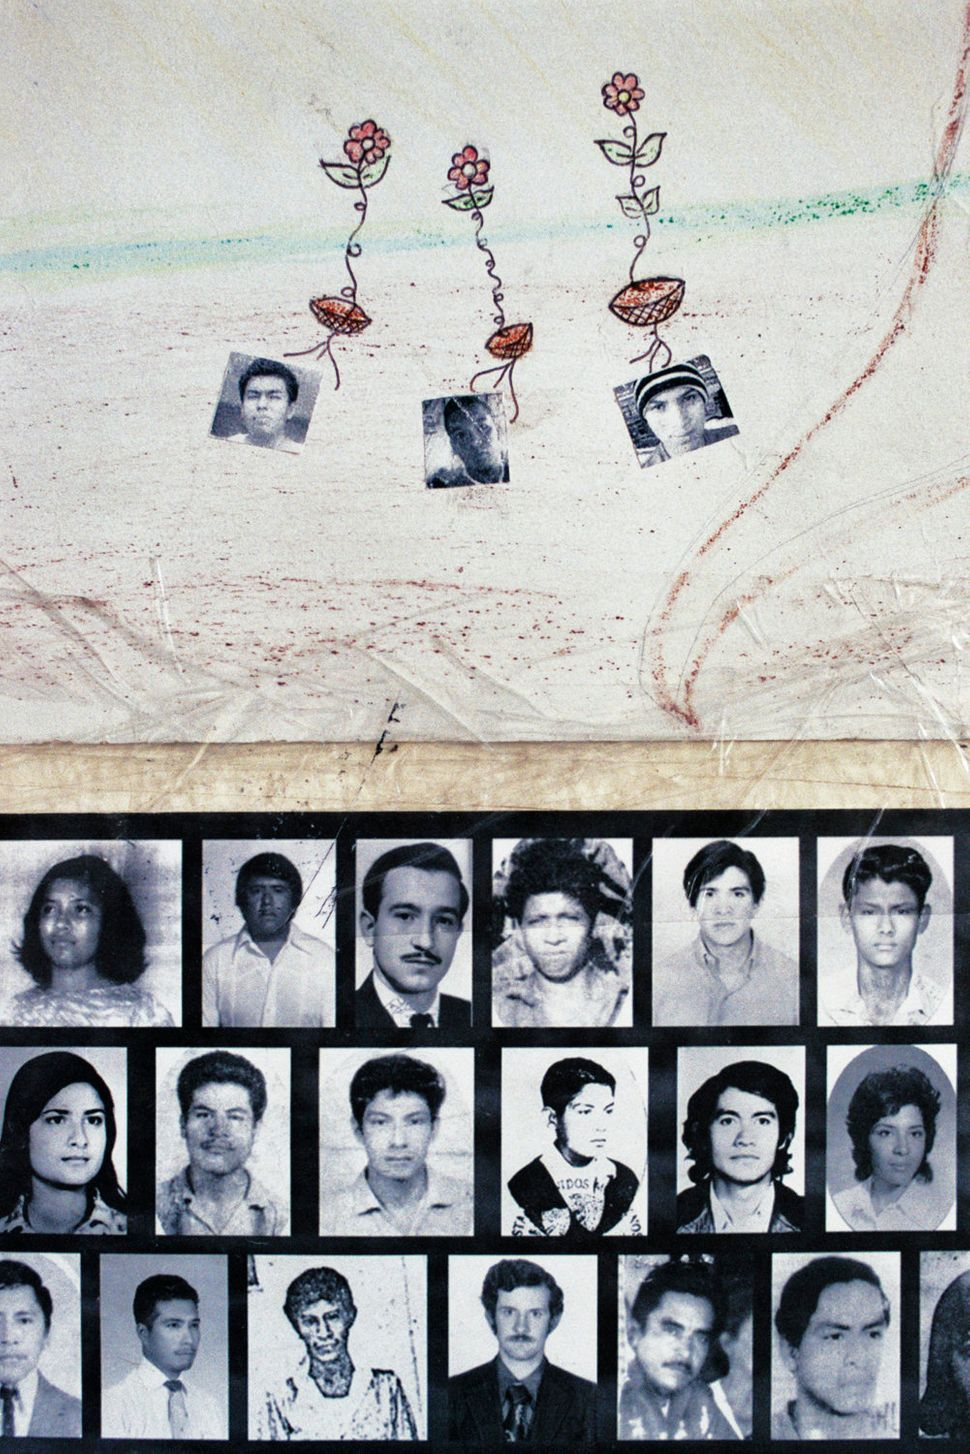 Drawings of Julio César Ramírez, Daniel Solís and Julio César Mondragón, the three Ayotzin